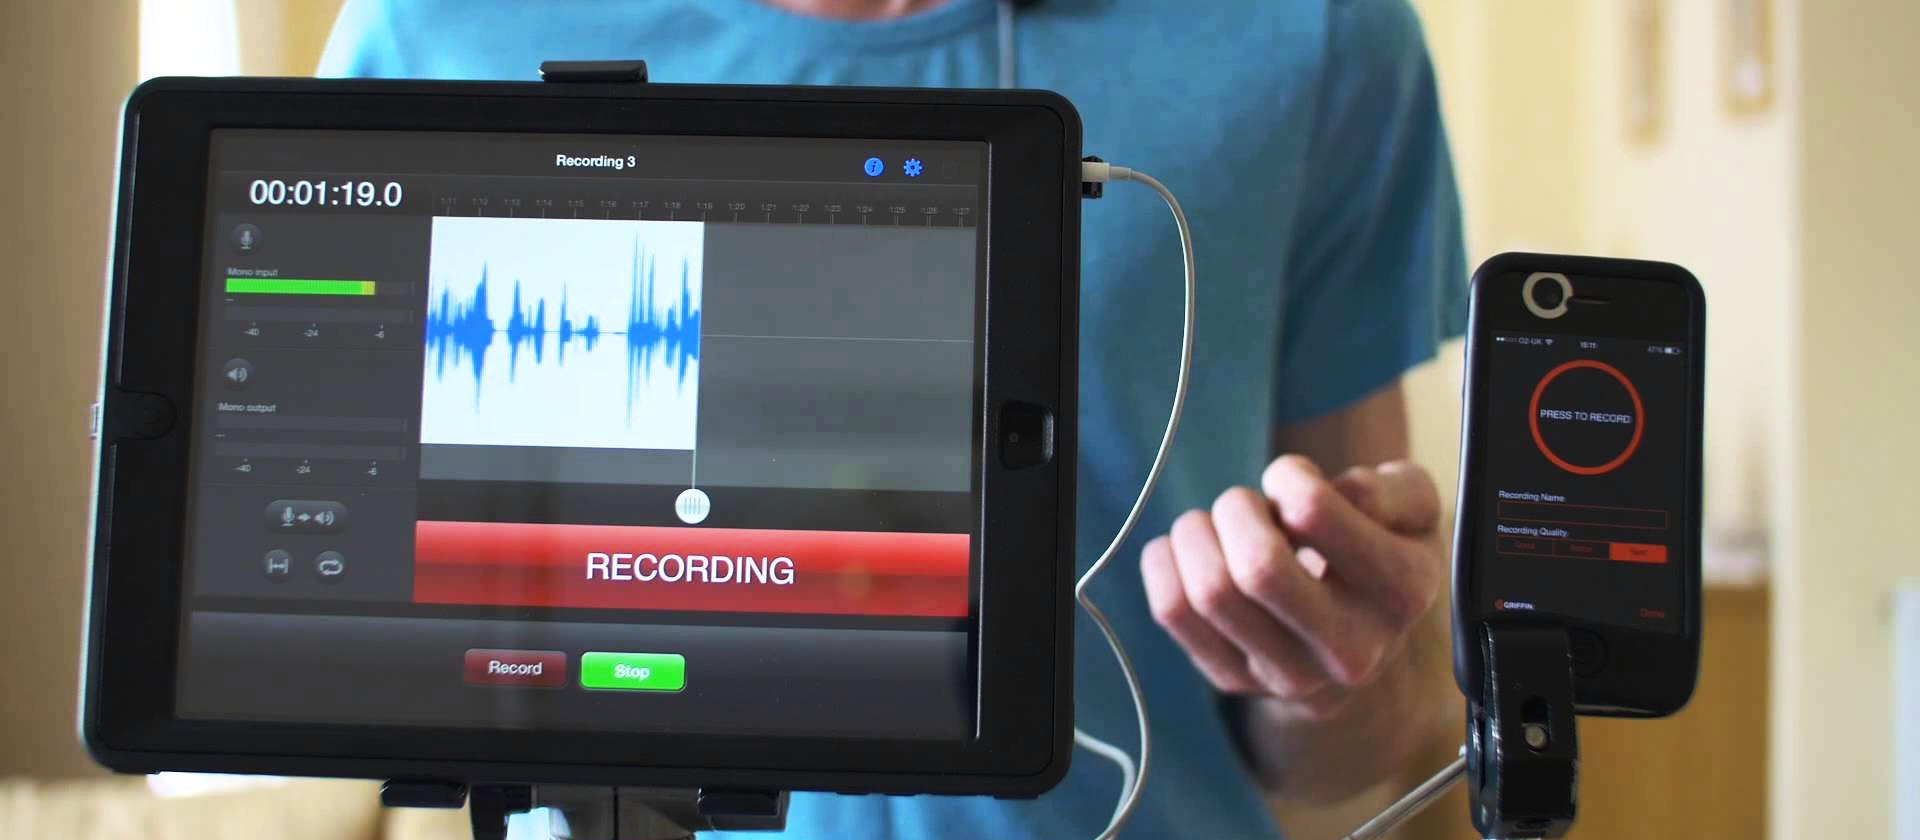 A waveform is shown on an ipad with the app Rode Rec